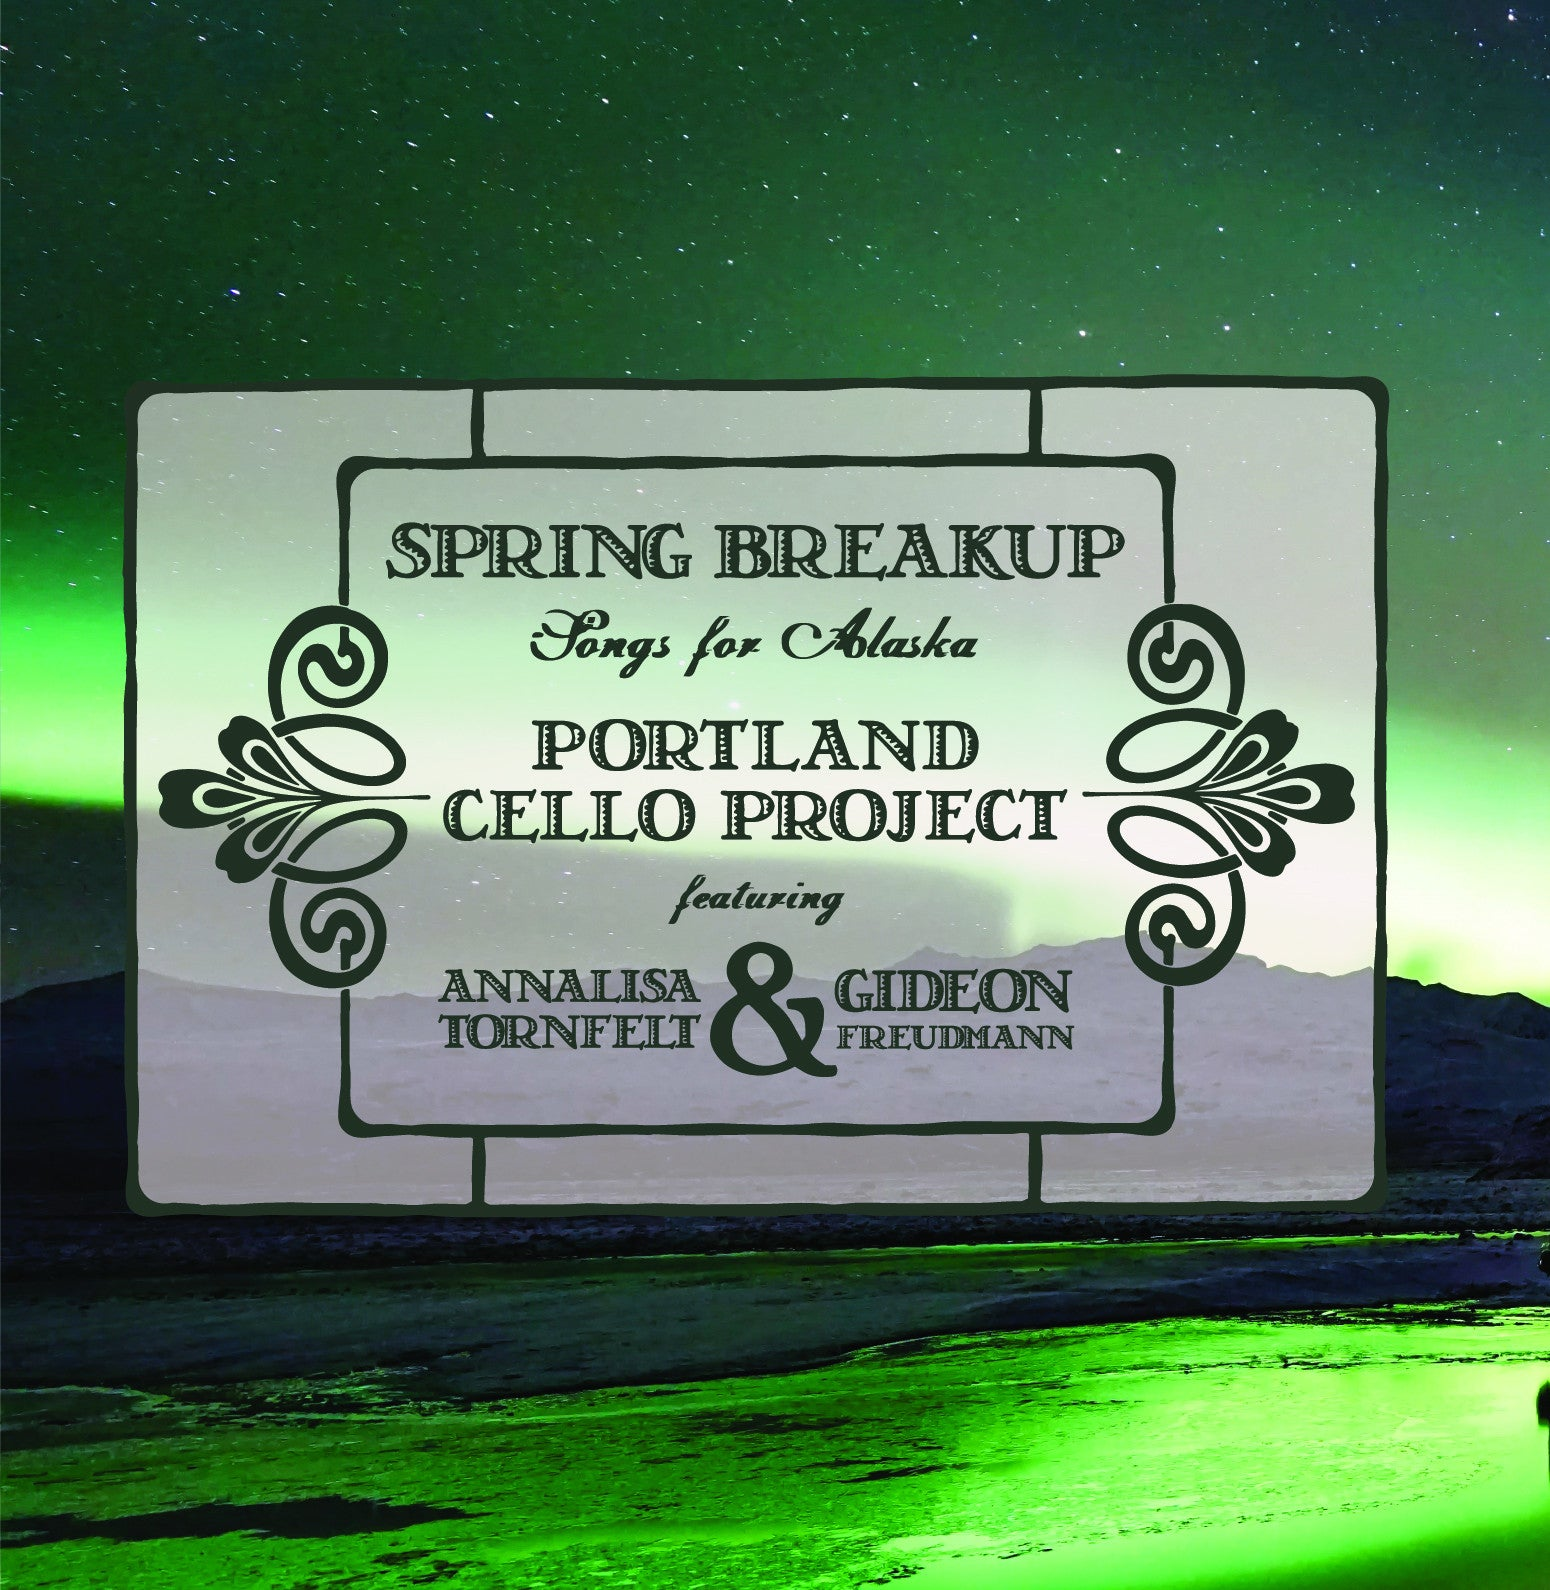 Spring Breakup: Songs for Alaska feat. Annalisa Tornfelt and Gideon Freudmann (MP3 download)